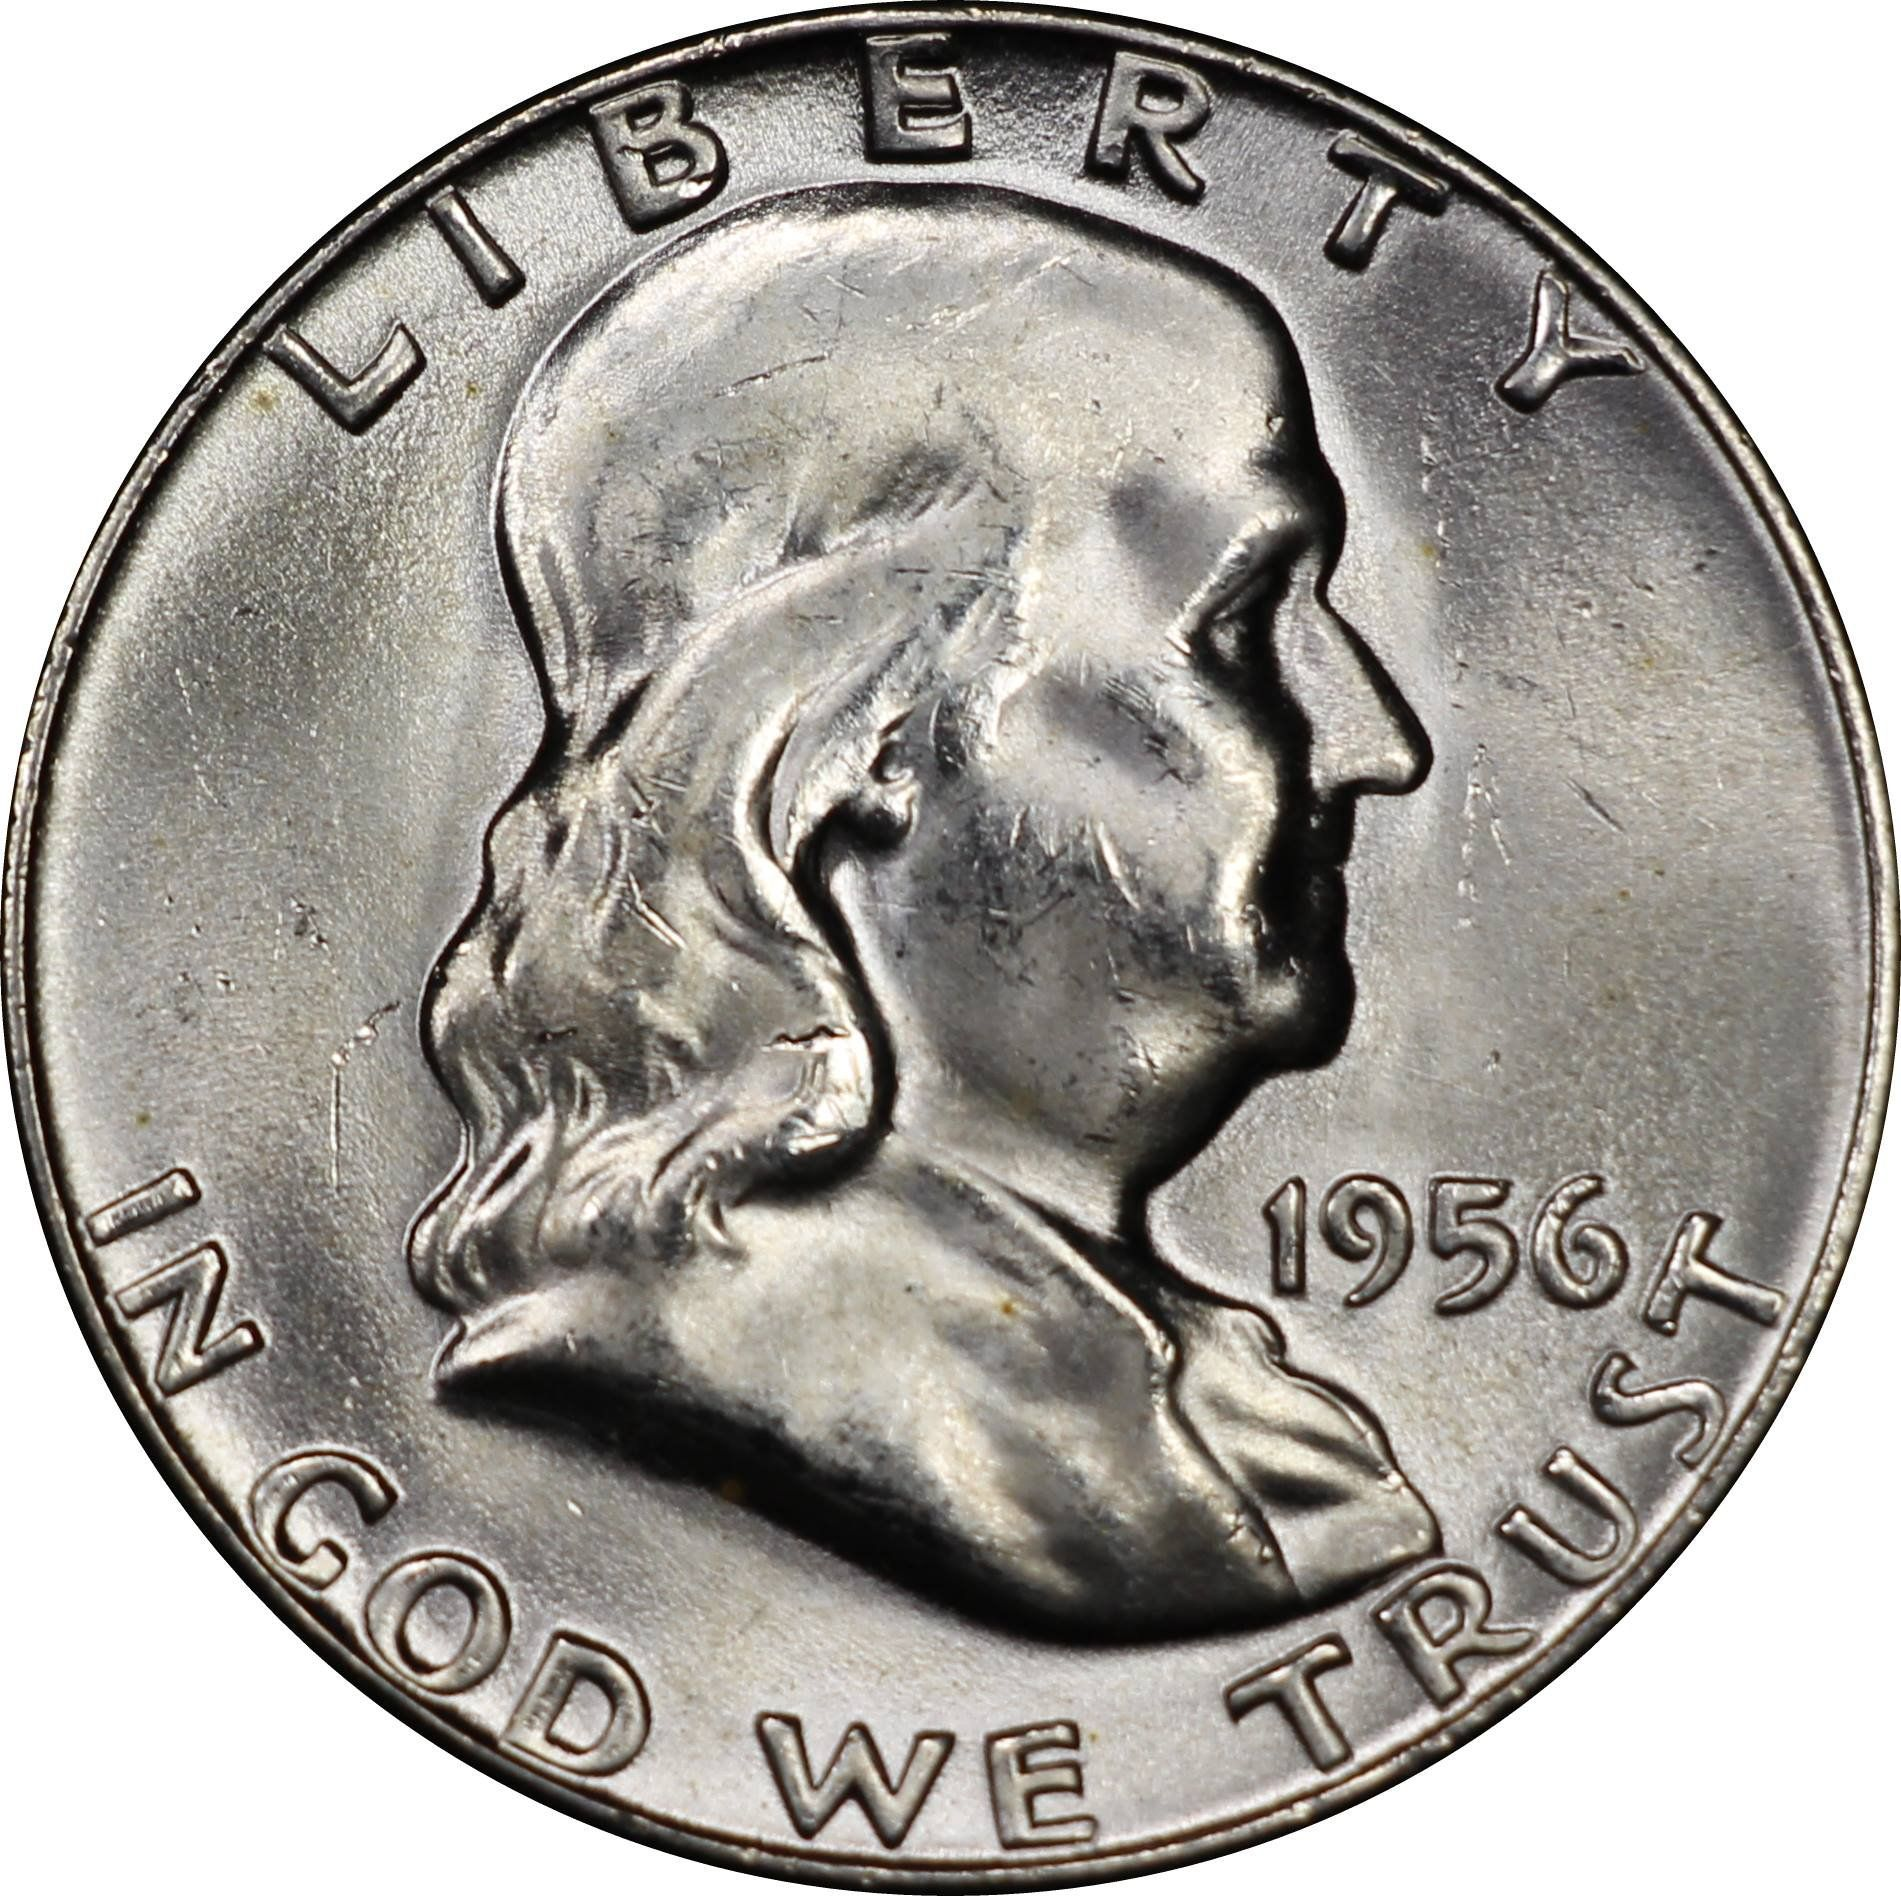 One 1 90 Silver United States Franklin Half Dollar From 1956 Mint State Condition With No Wear And Strong Luster 30 6mm Diam Silver Coins Coins Half Dollar